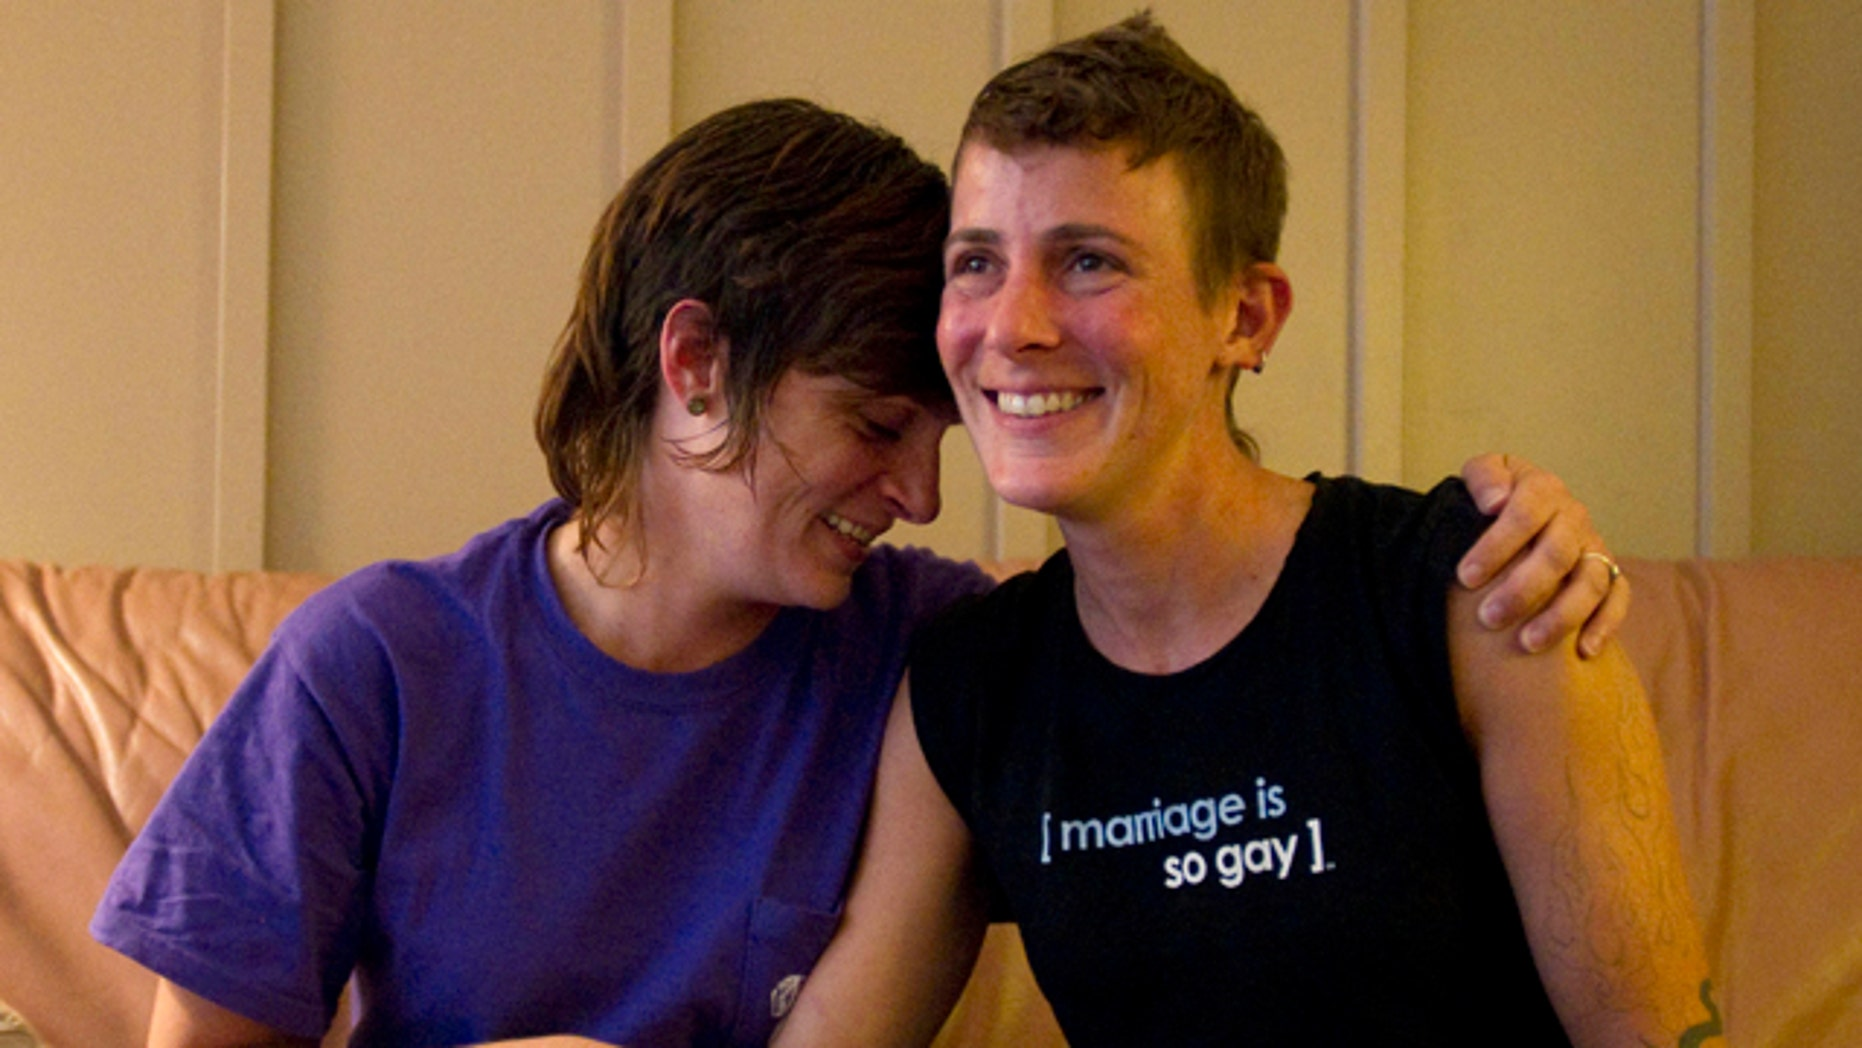 July 25: Lesbian couple Jennifer Tipton, left, and Olivier Odom are seen at a coffee house in Knoxville, Tenn. The couple are calling for Dollywood Splash County to be more inclusive to its guests after they were asked to reverse the pro-gay marriage T-shirt worn by Odom, during a recent visit.